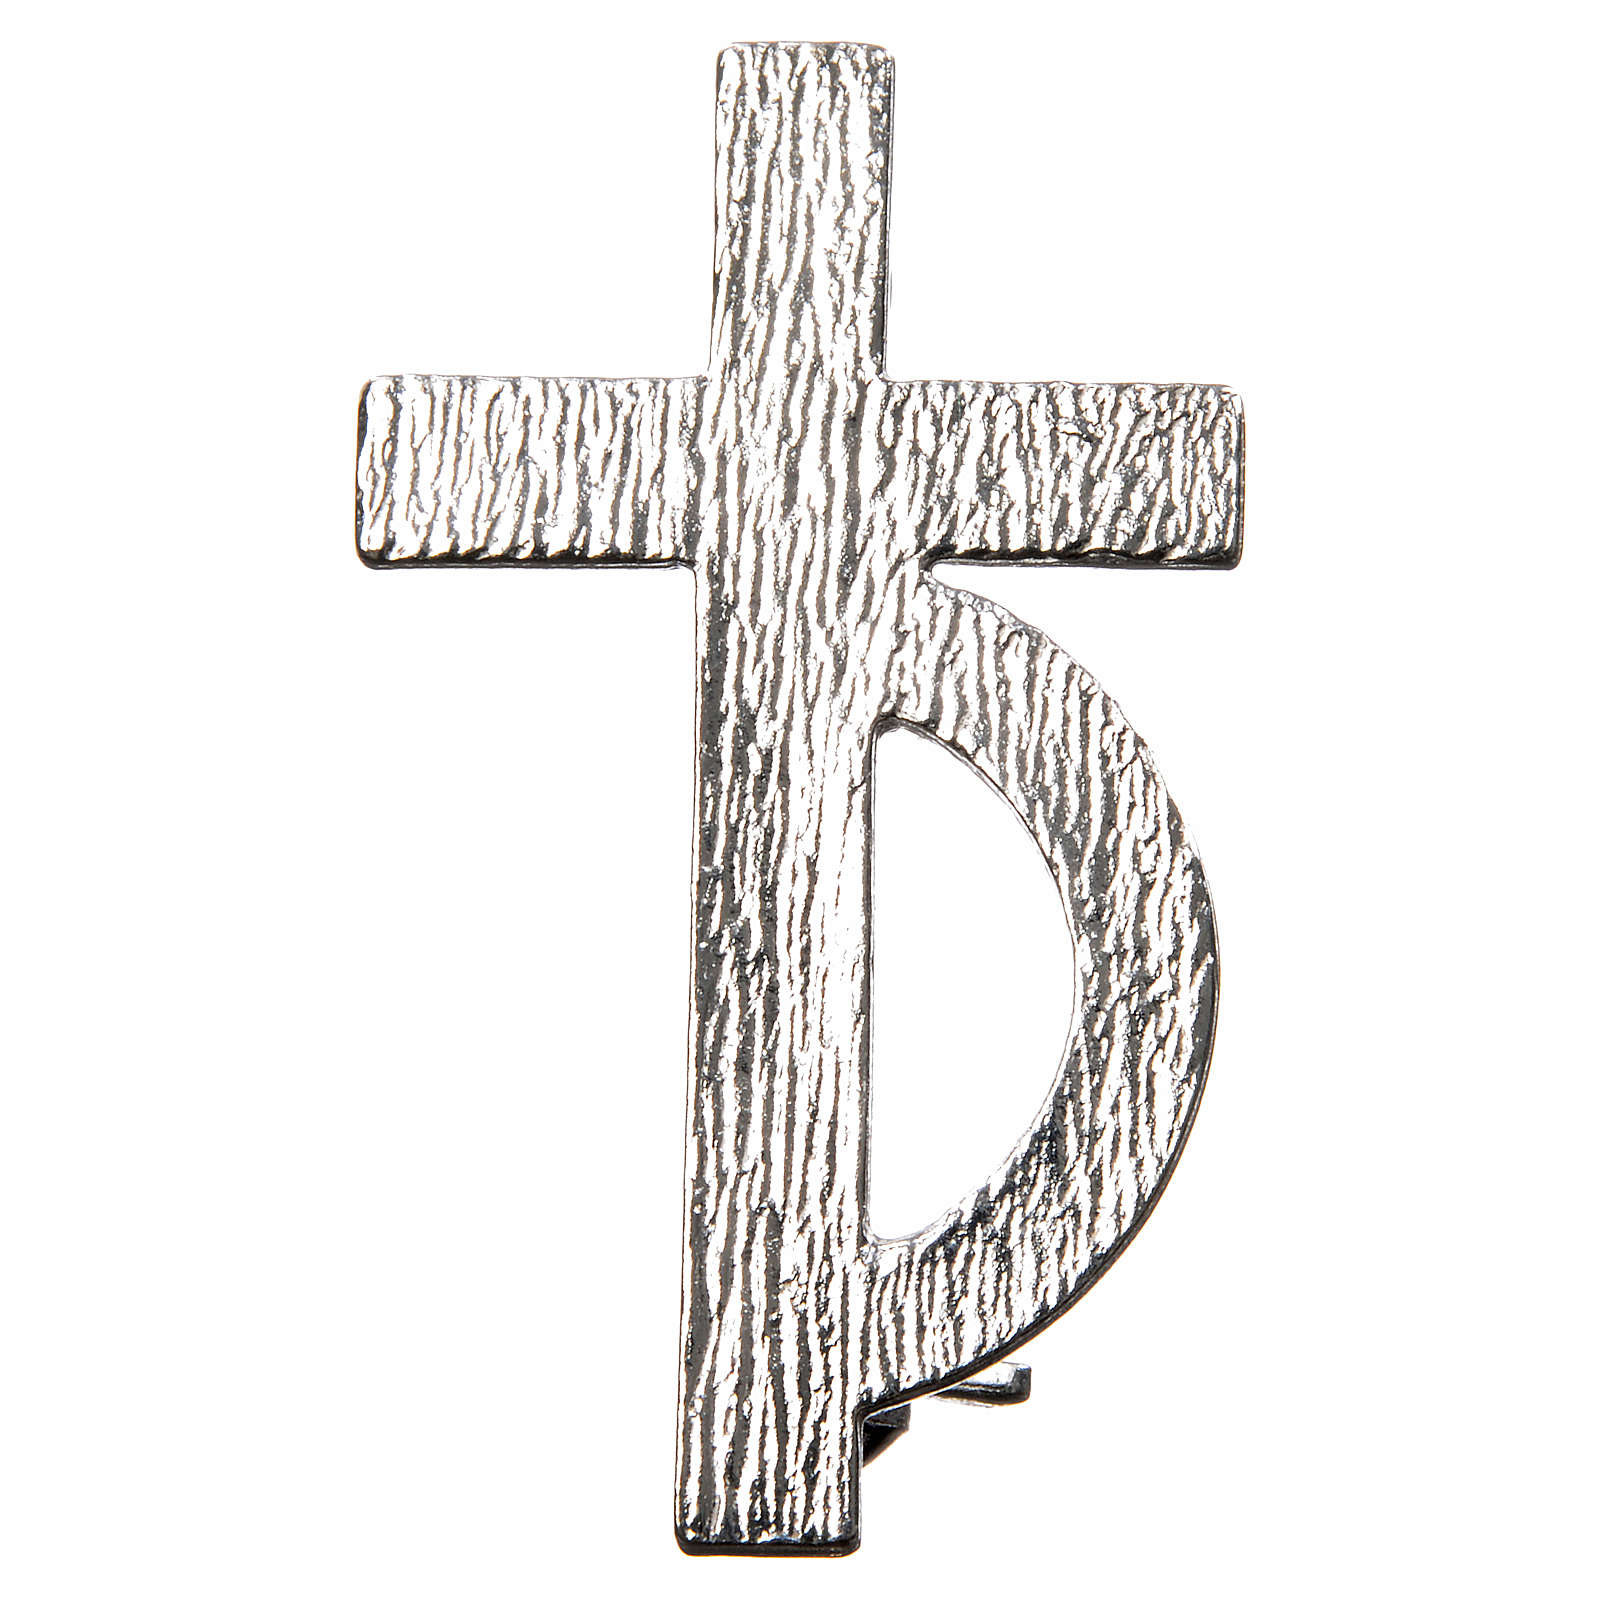 Clergyman cross pin for deacons in 925 silver 4